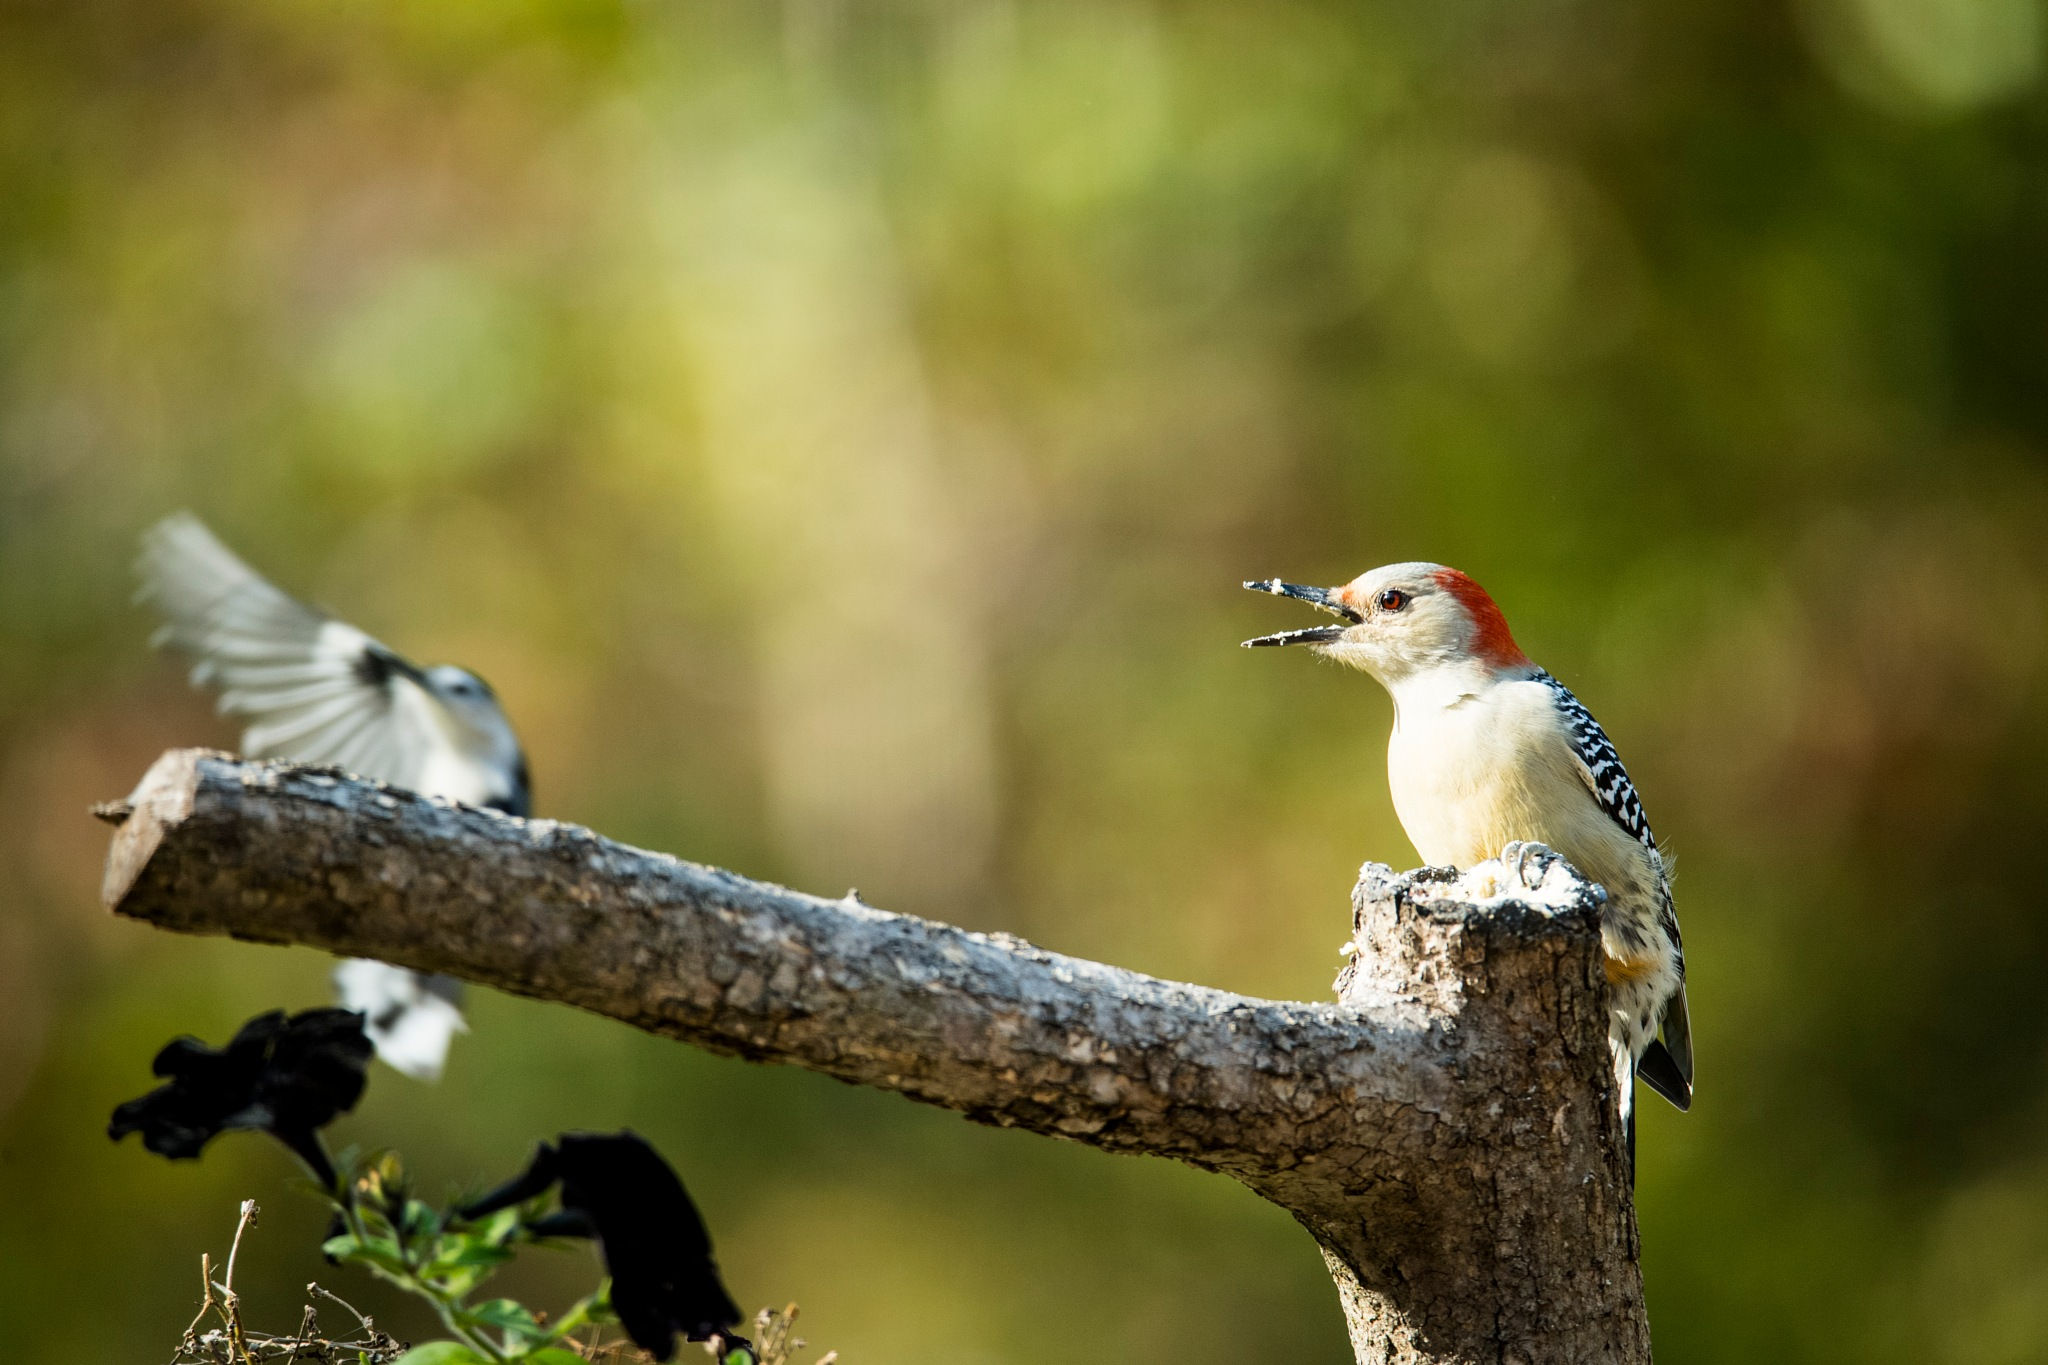 red-bellied woodpecker and nuthatch by JanetF